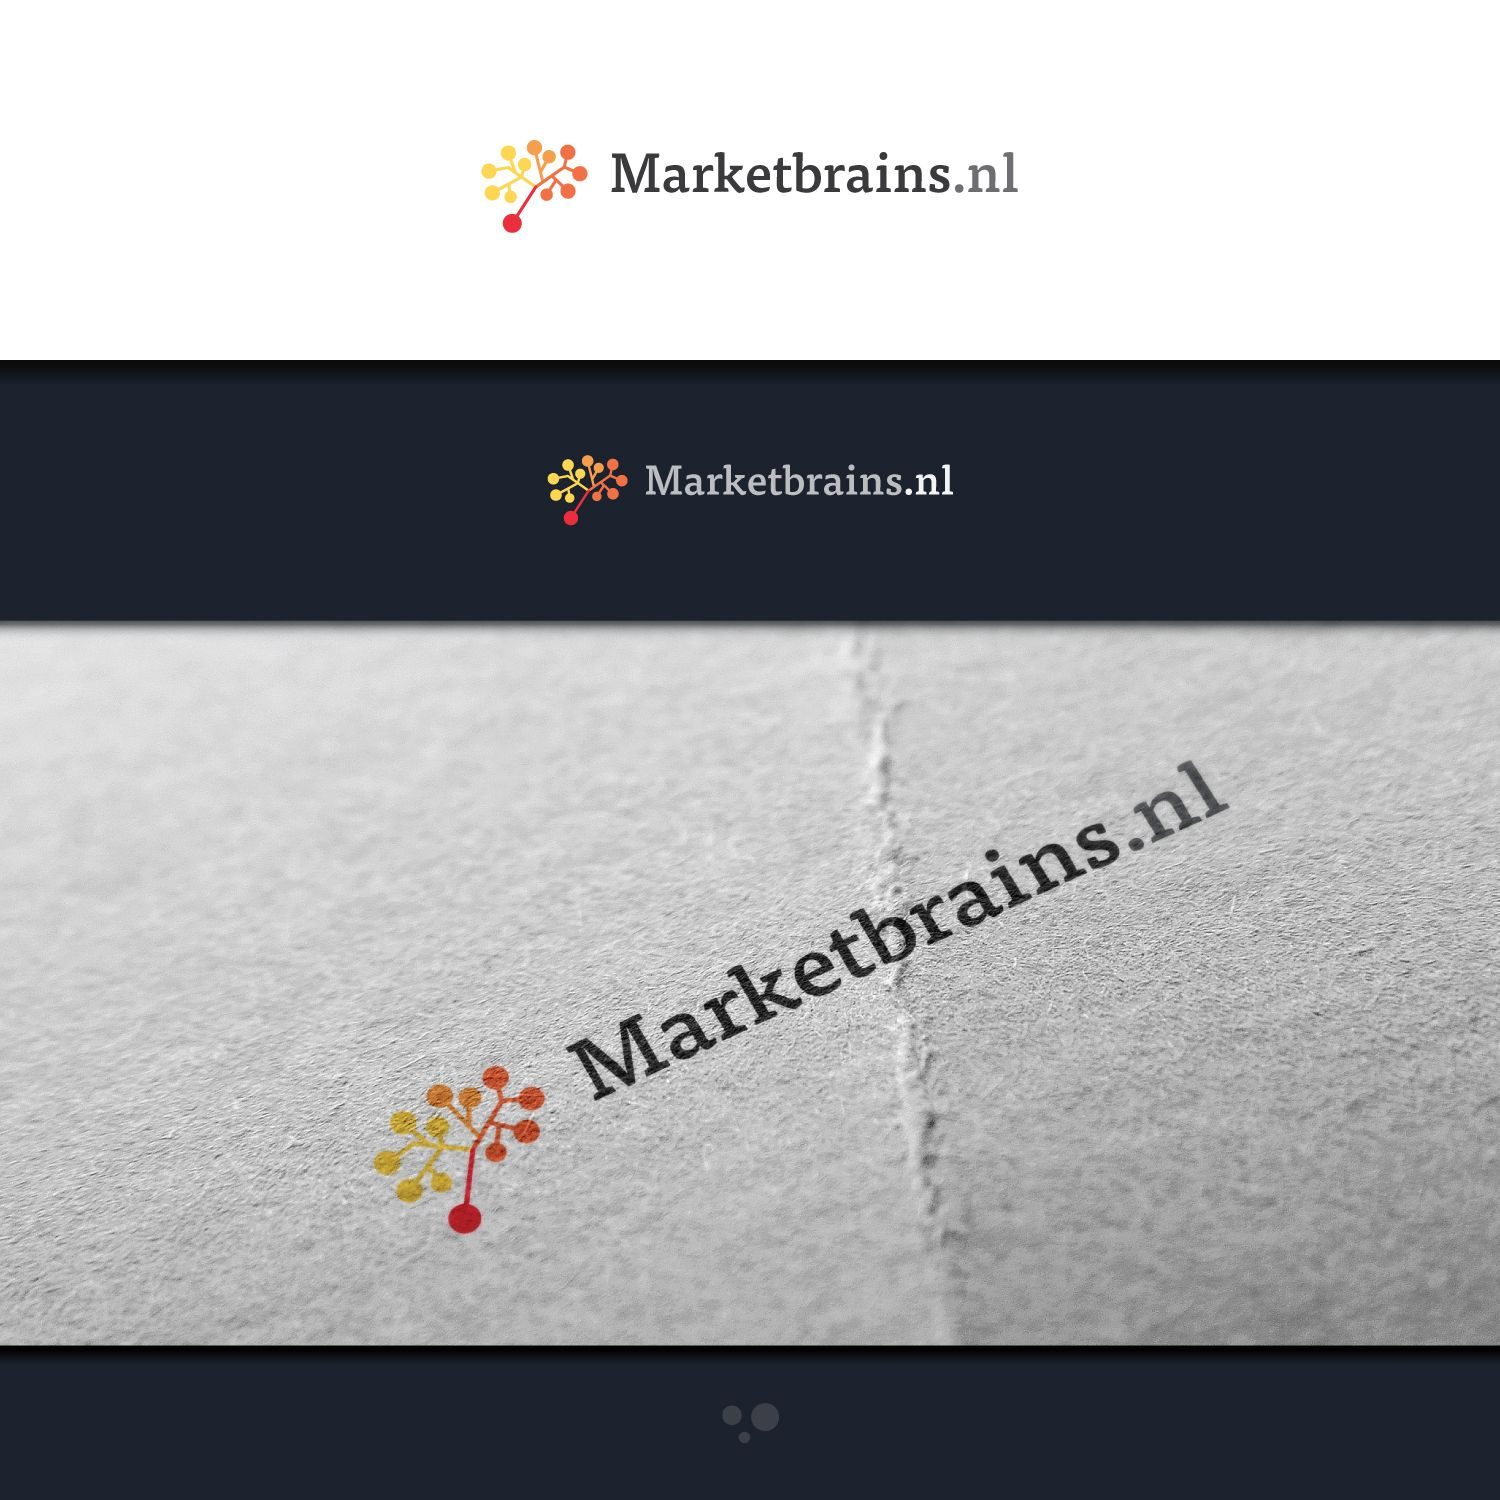 New logo design for Marketbrains.nl, an online ... Serious, Modern Logo Design by desert_fox99